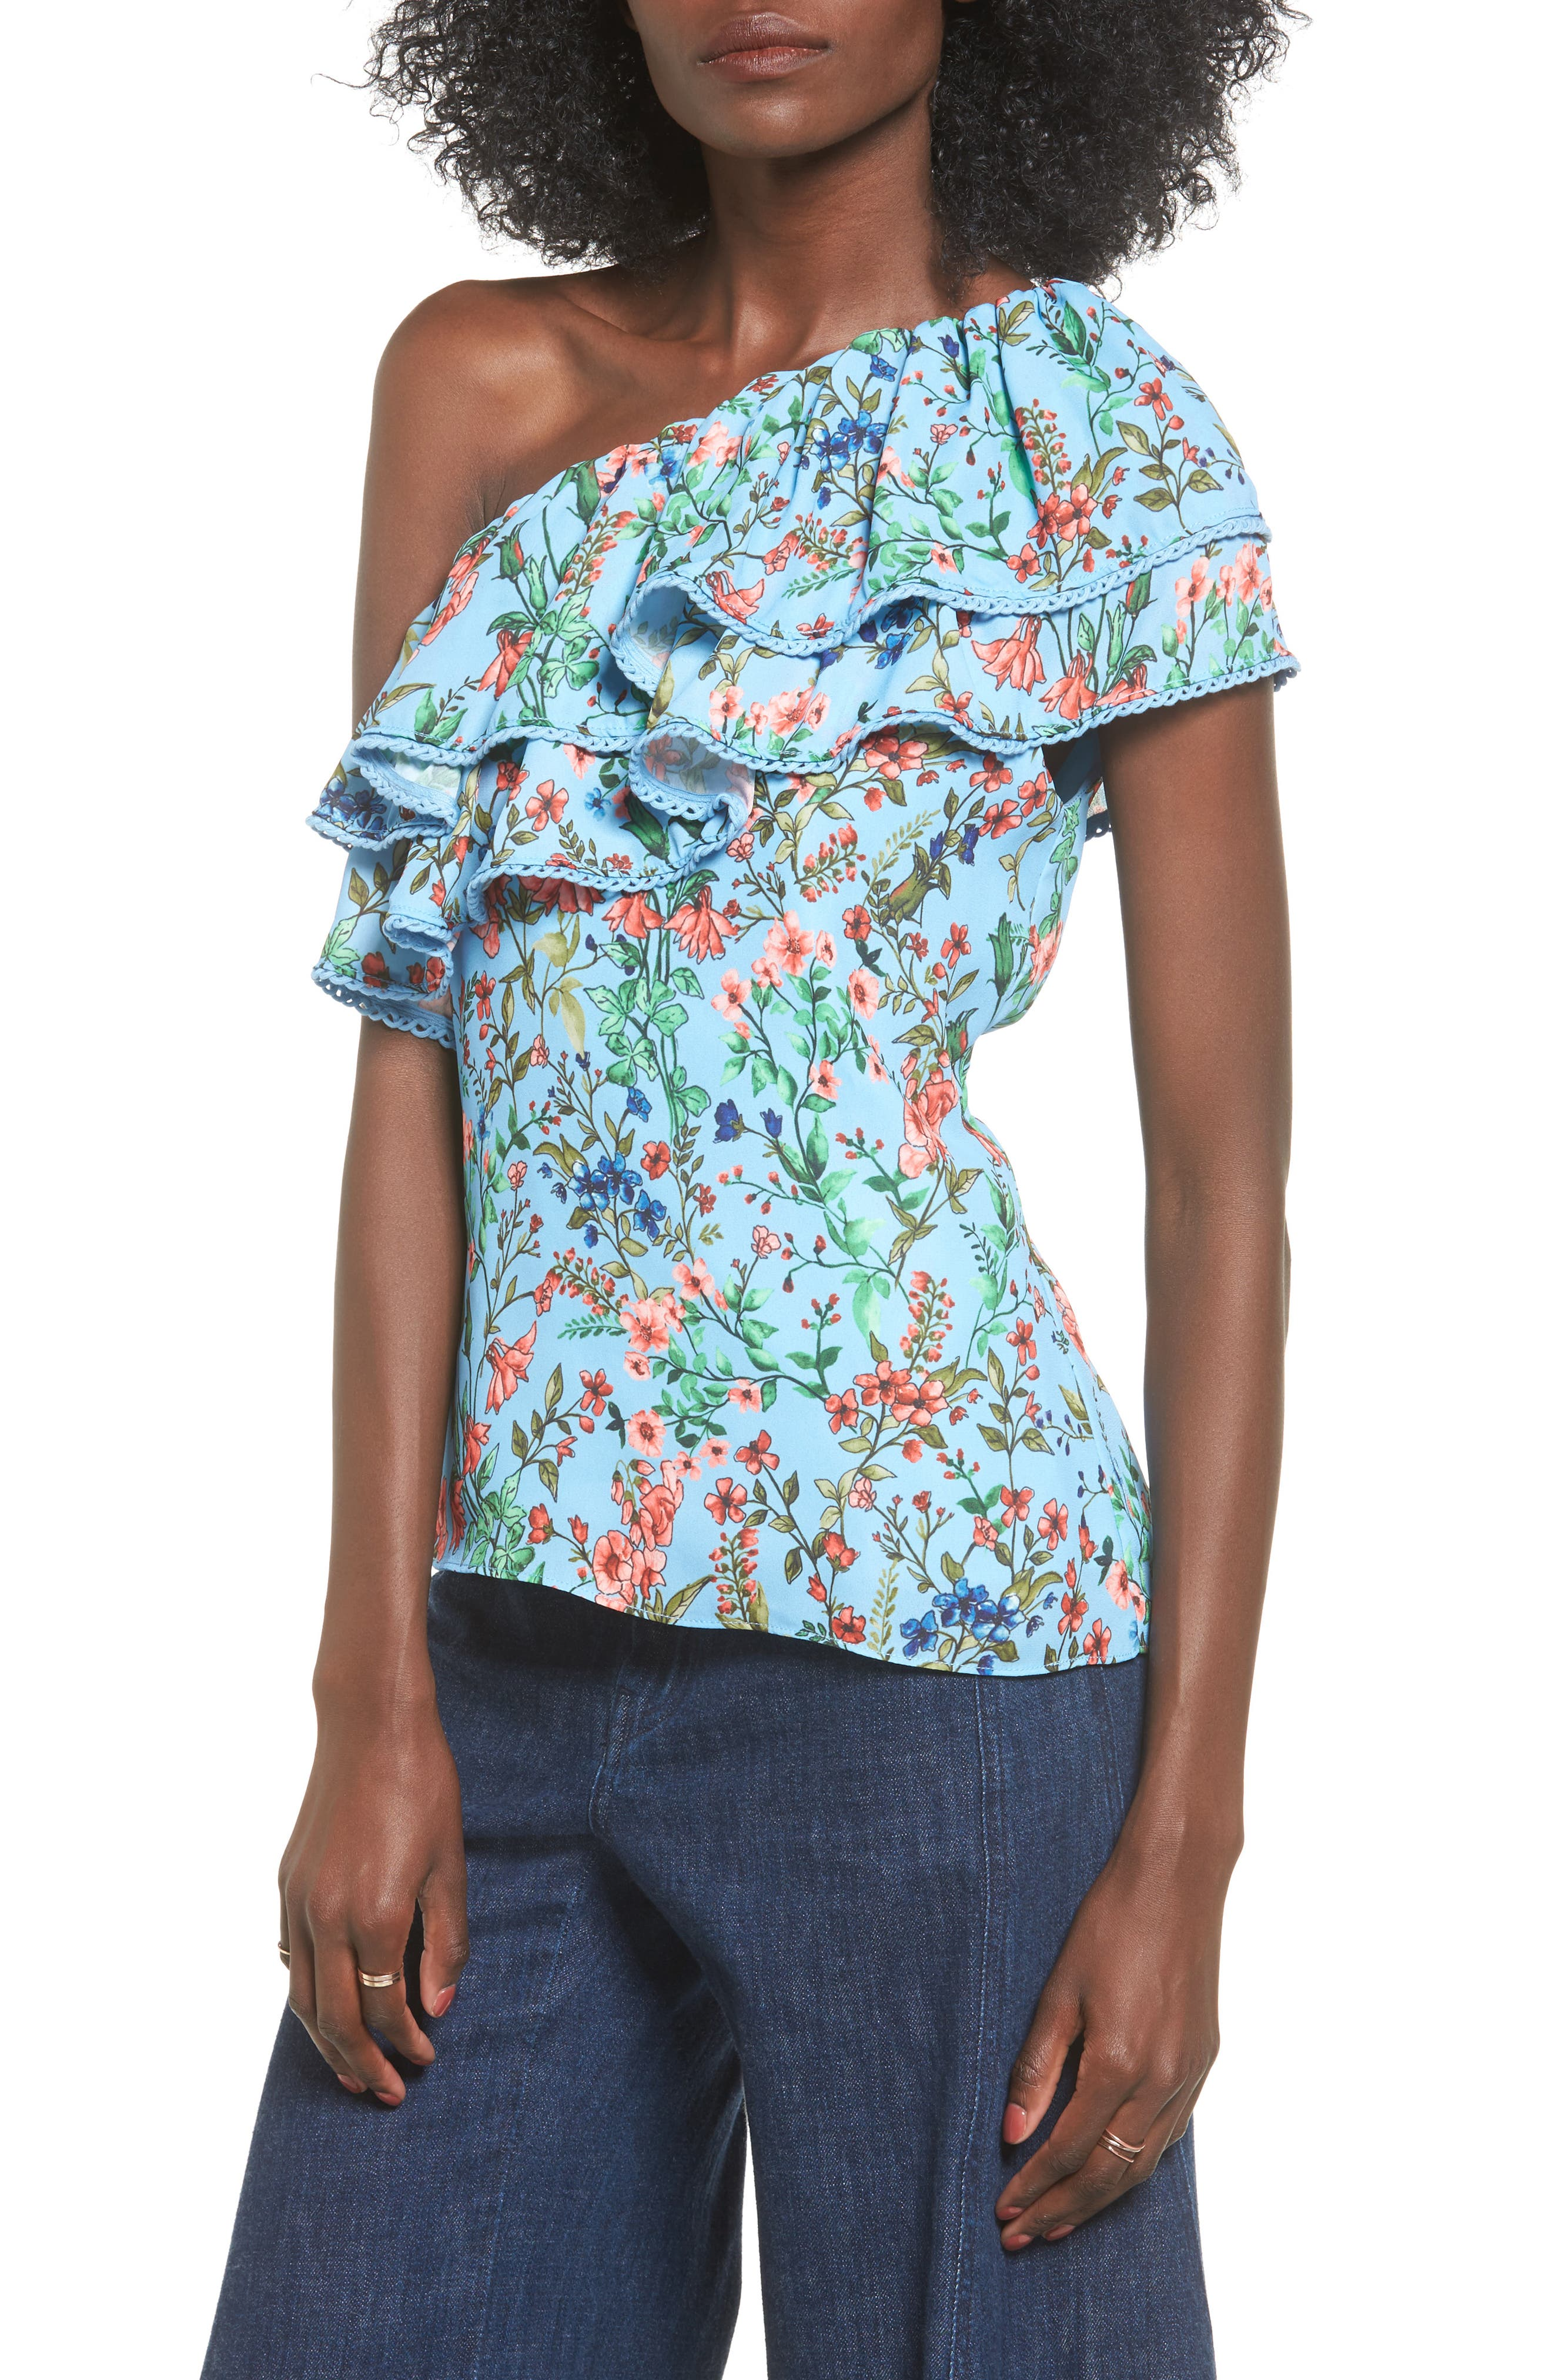 devlin Vicky One-Shoulder Blouse